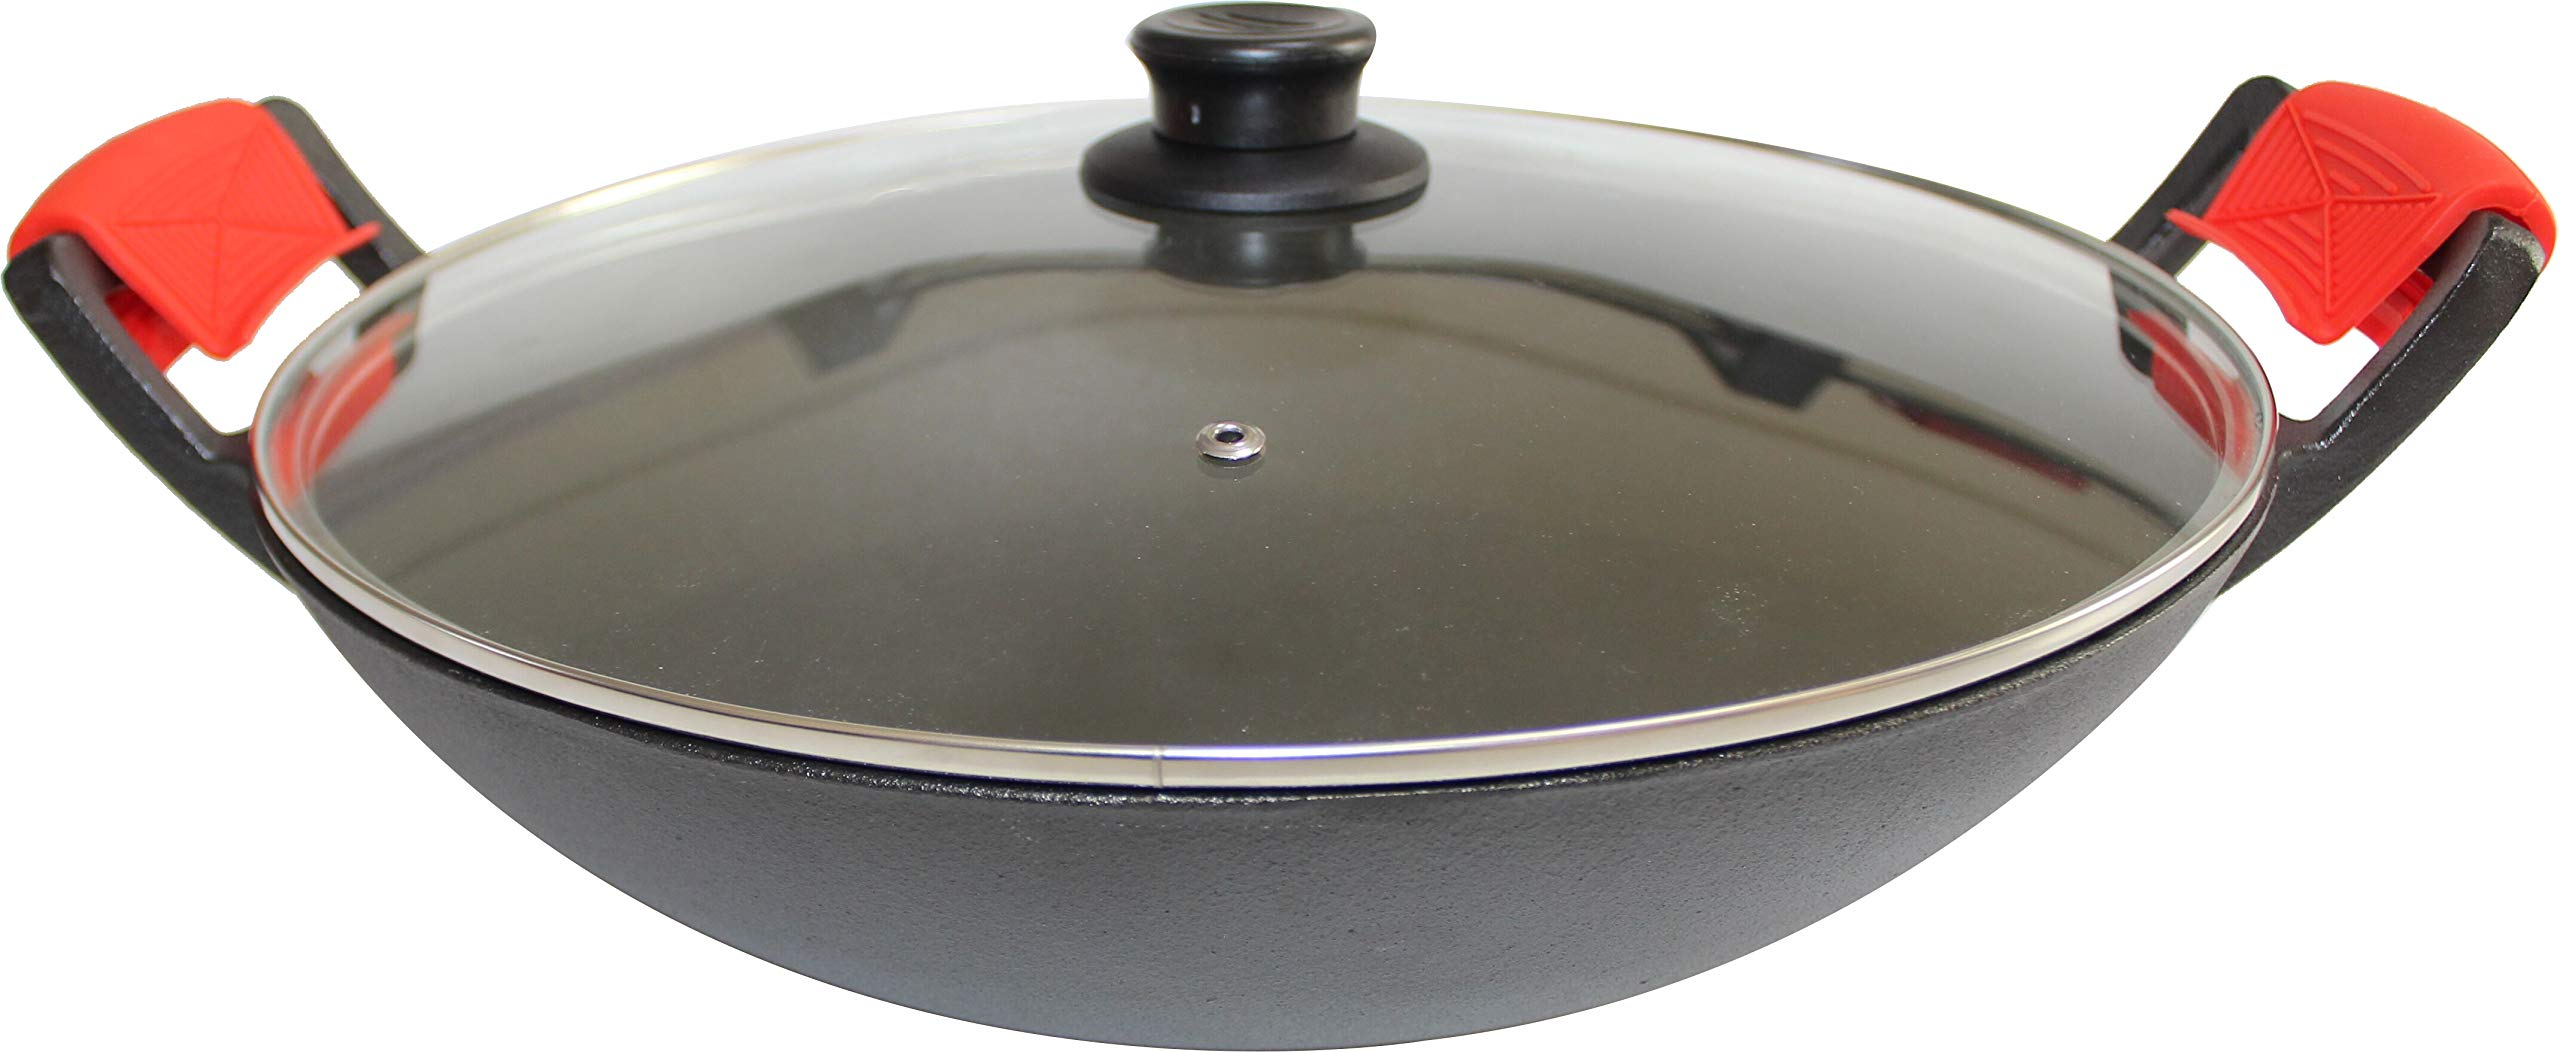 14-Inch Cast Iron Wok Set (Pre-Seasoned), Glass Lid & Silicone Hot Handle Holders by Crucible Cookware (Image #4)